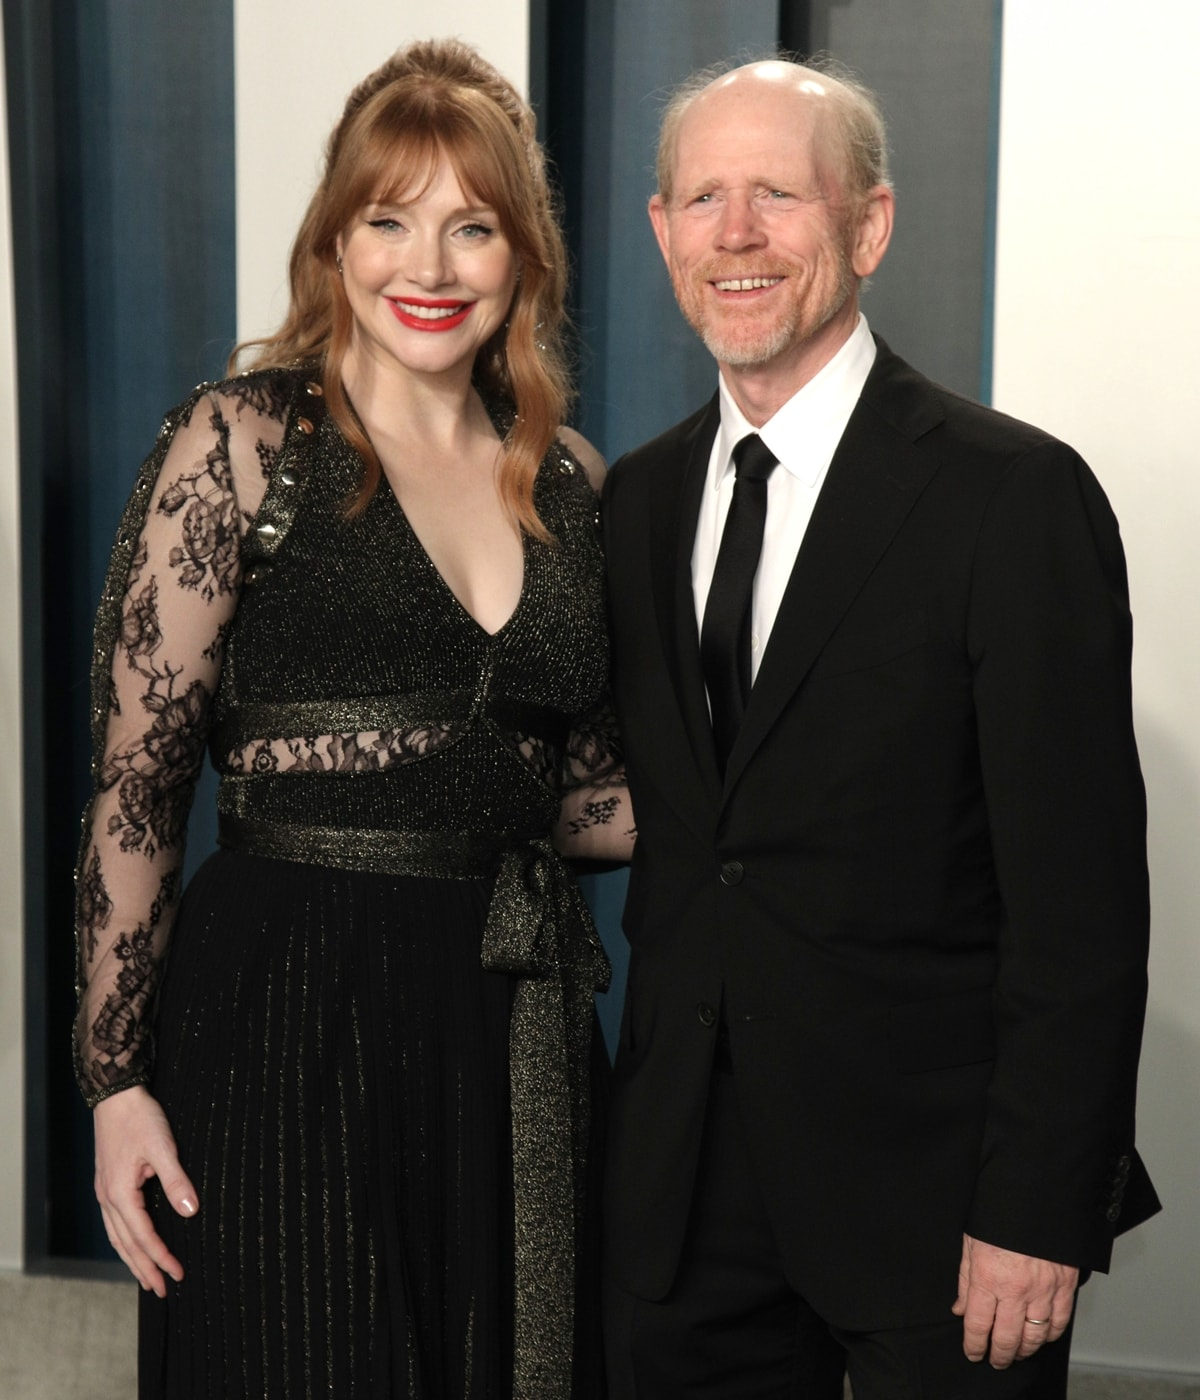 Ron Howard (R) mistook Jessica Chastain for his oldest daughter Bryce Dallas Howard (L)